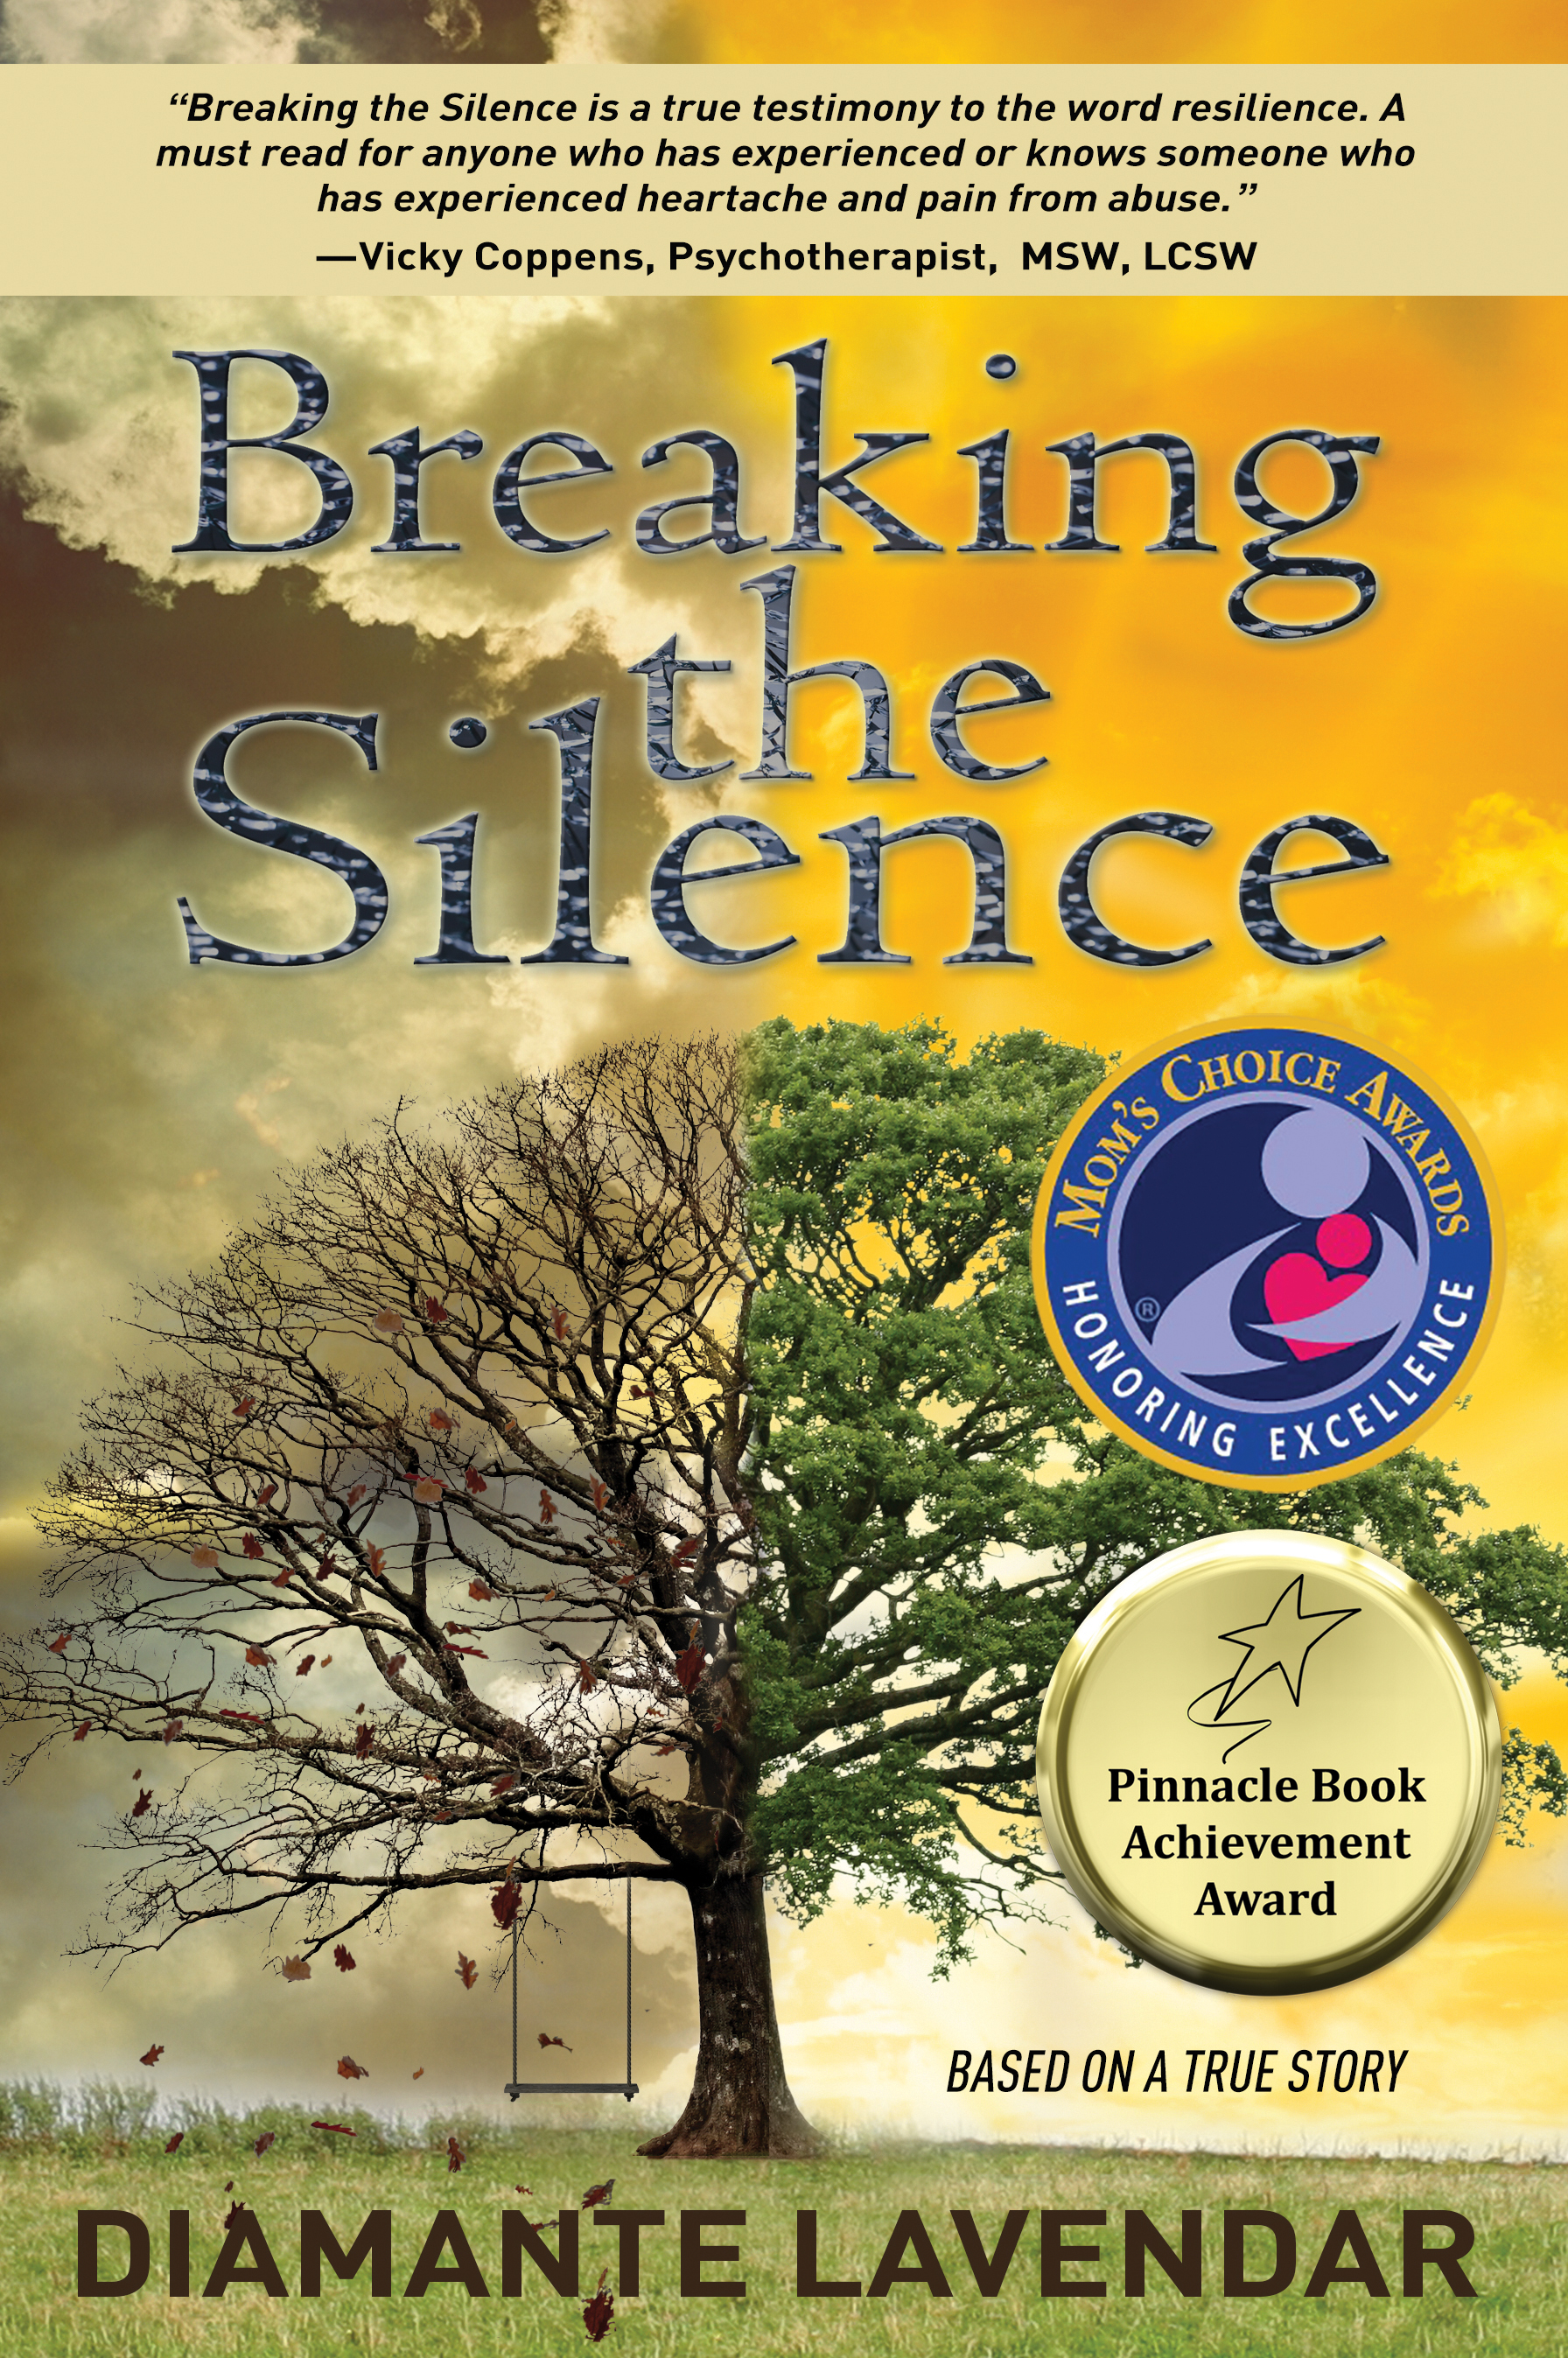 Breaking the Silence - Winner of Mom's Choice Gold Medal in the category of Inspirational Fiction!Winner of the Pinnacle Book Achievement Award in Inspirational Fiction and winner of Readers' Favorite 5 Star Review Medal!Also a recipient of 2016 Director's Choice Winner Outstanding Human Relations Courage Indie Book and 2016 Silver Winner Realistic Human Relations Fiction Book!Winner of the 2017 Gold Medal for Inspirational Fiction from Reader's Favorite!